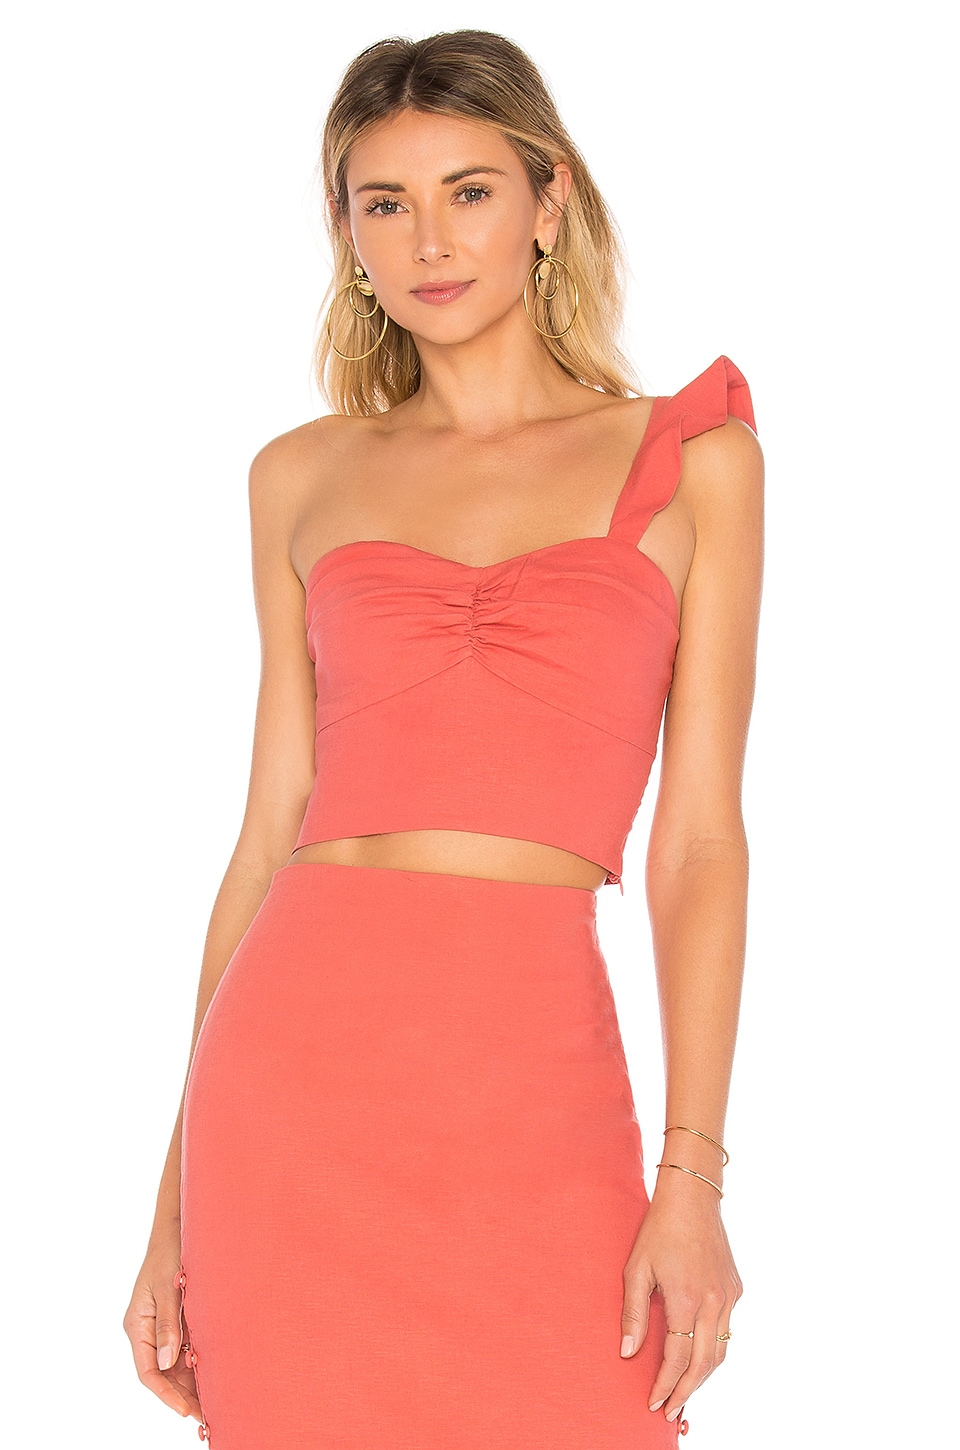 L'Academie The Cypress Top in Rose Terracotta